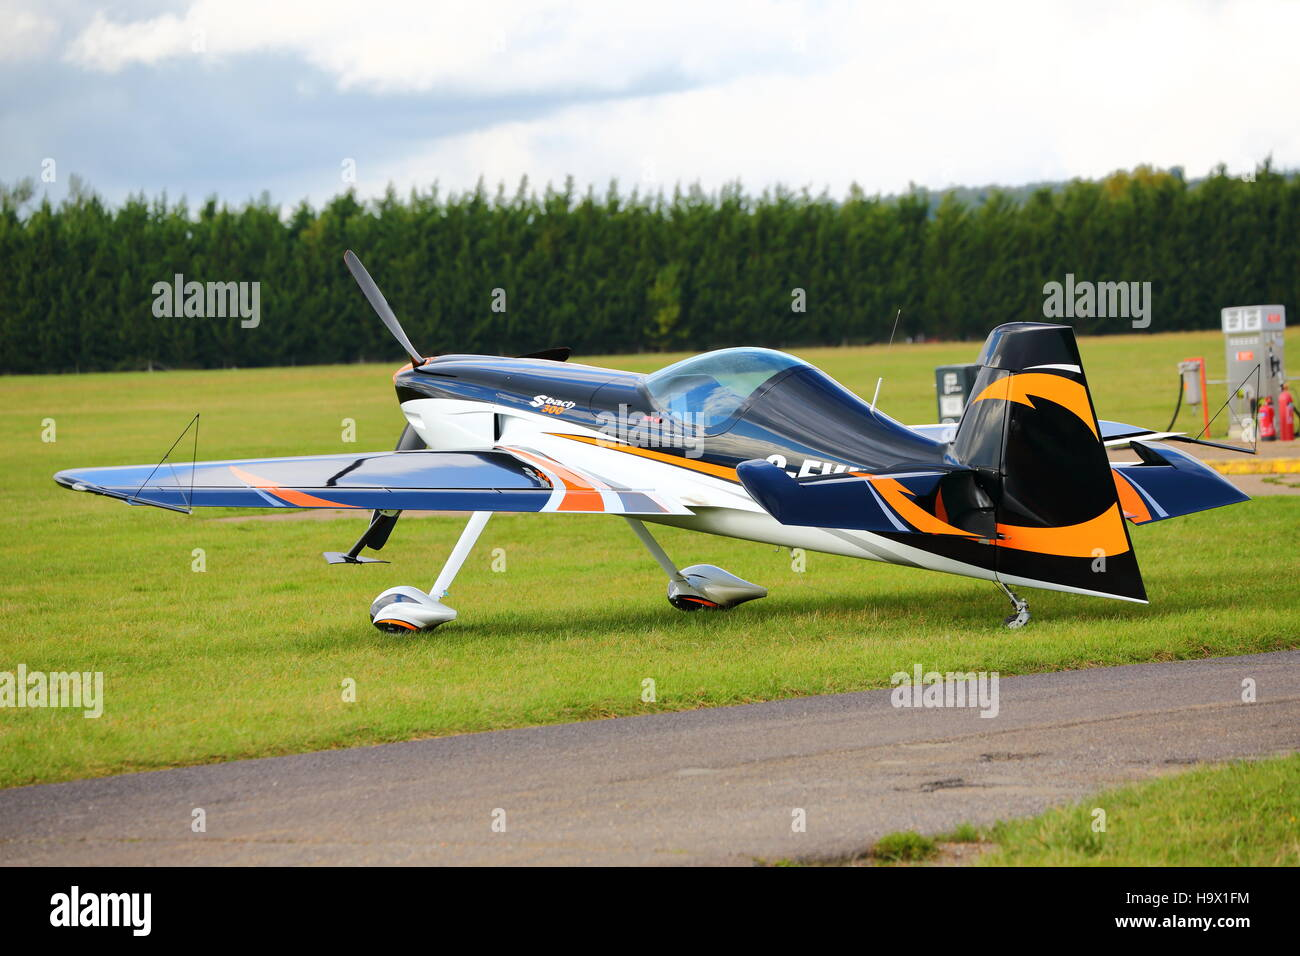 Xtremeair XA41 Sbach 300 G-EVIL parked at White Waltham airfield - Stock Image